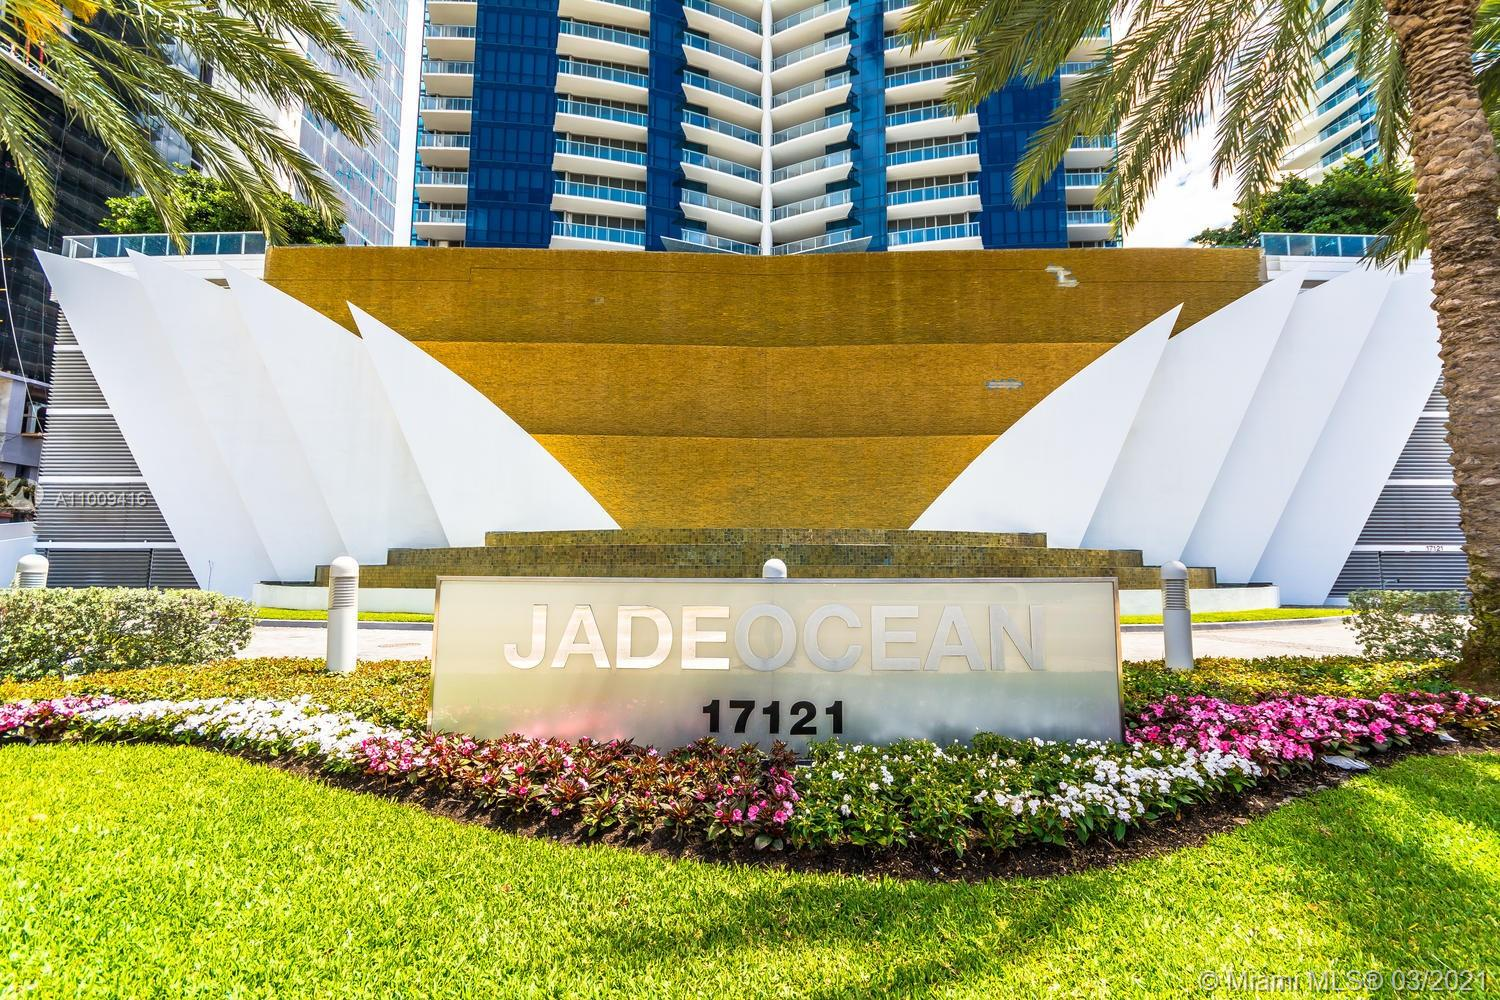 Breathtaking Direct Ocean and city views. This is a definite must see unit at the spectacular Jade Ocean by the Beach. Located in the most premier high rise condominium in Sunny Isles Beach. Impeccable finishes throughout the entire 4 bedroom / 4.5 bathroom unit. Amenities include, beach service, fitness center, full service spa, two pools, party room, valet parking and more. The seller is willing to trade his unit for a smaller, remodeled apartment in Sunny Isles.